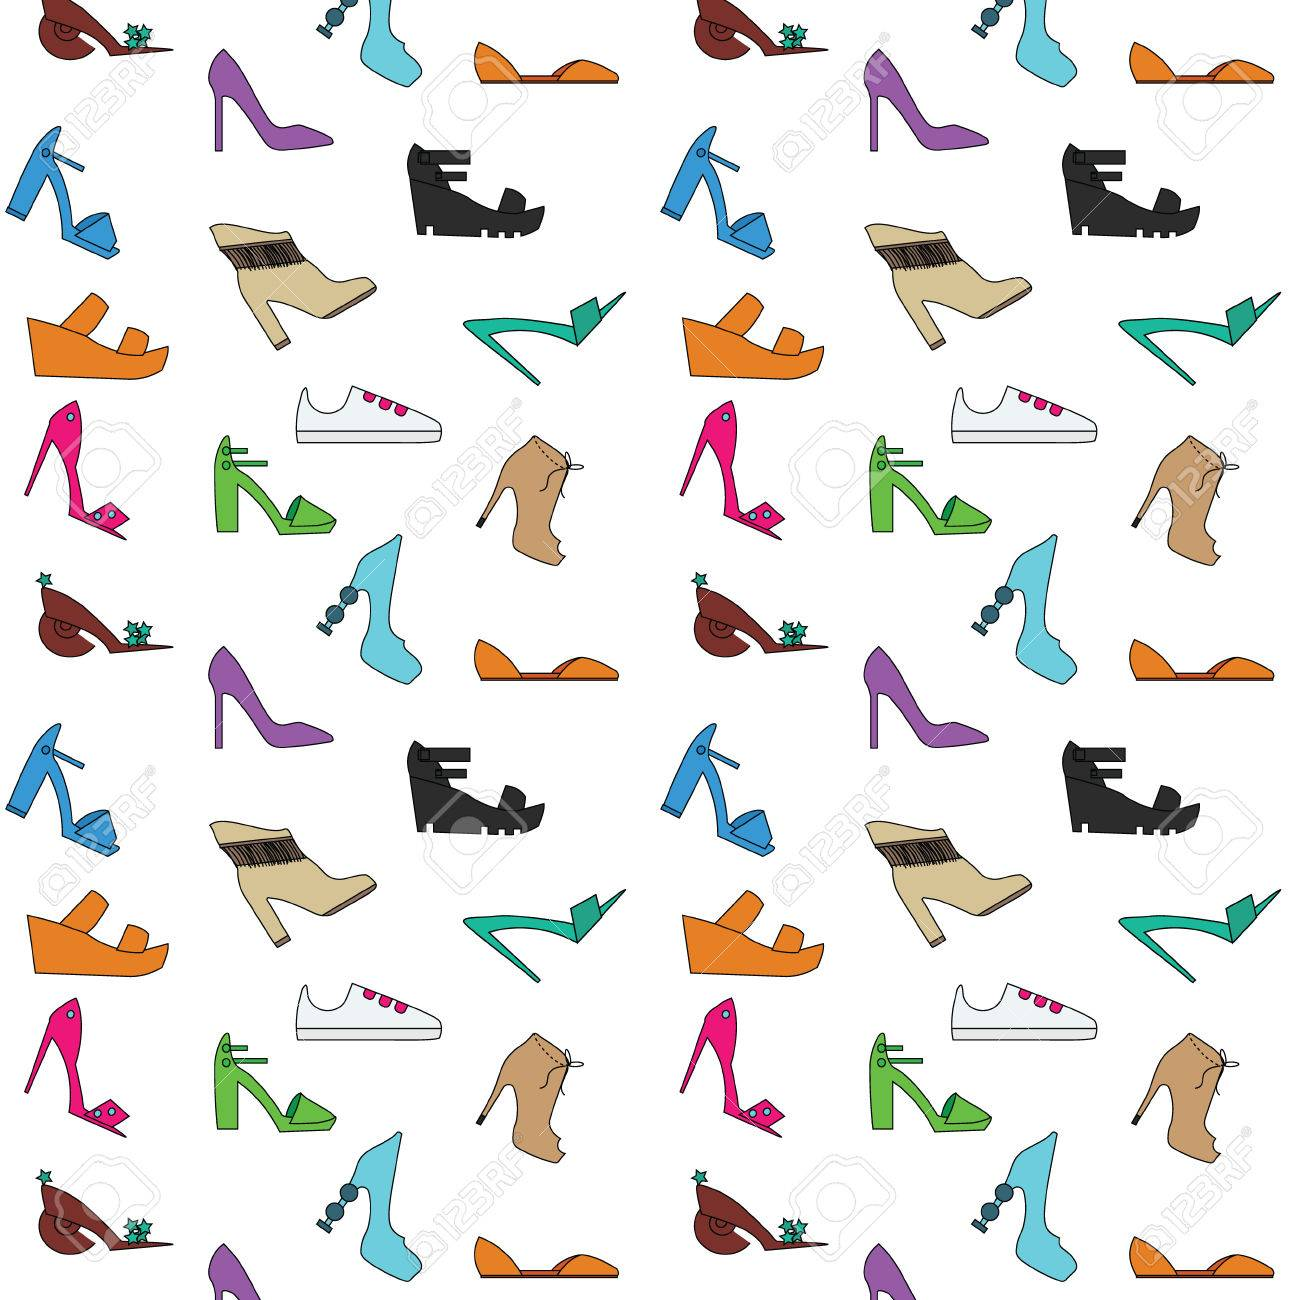 Women S Shoes Pattern Types Of Women Shoes Hand Drawn Style Royalty Free Cliparts Vectors And Stock Illustration Image 55594370